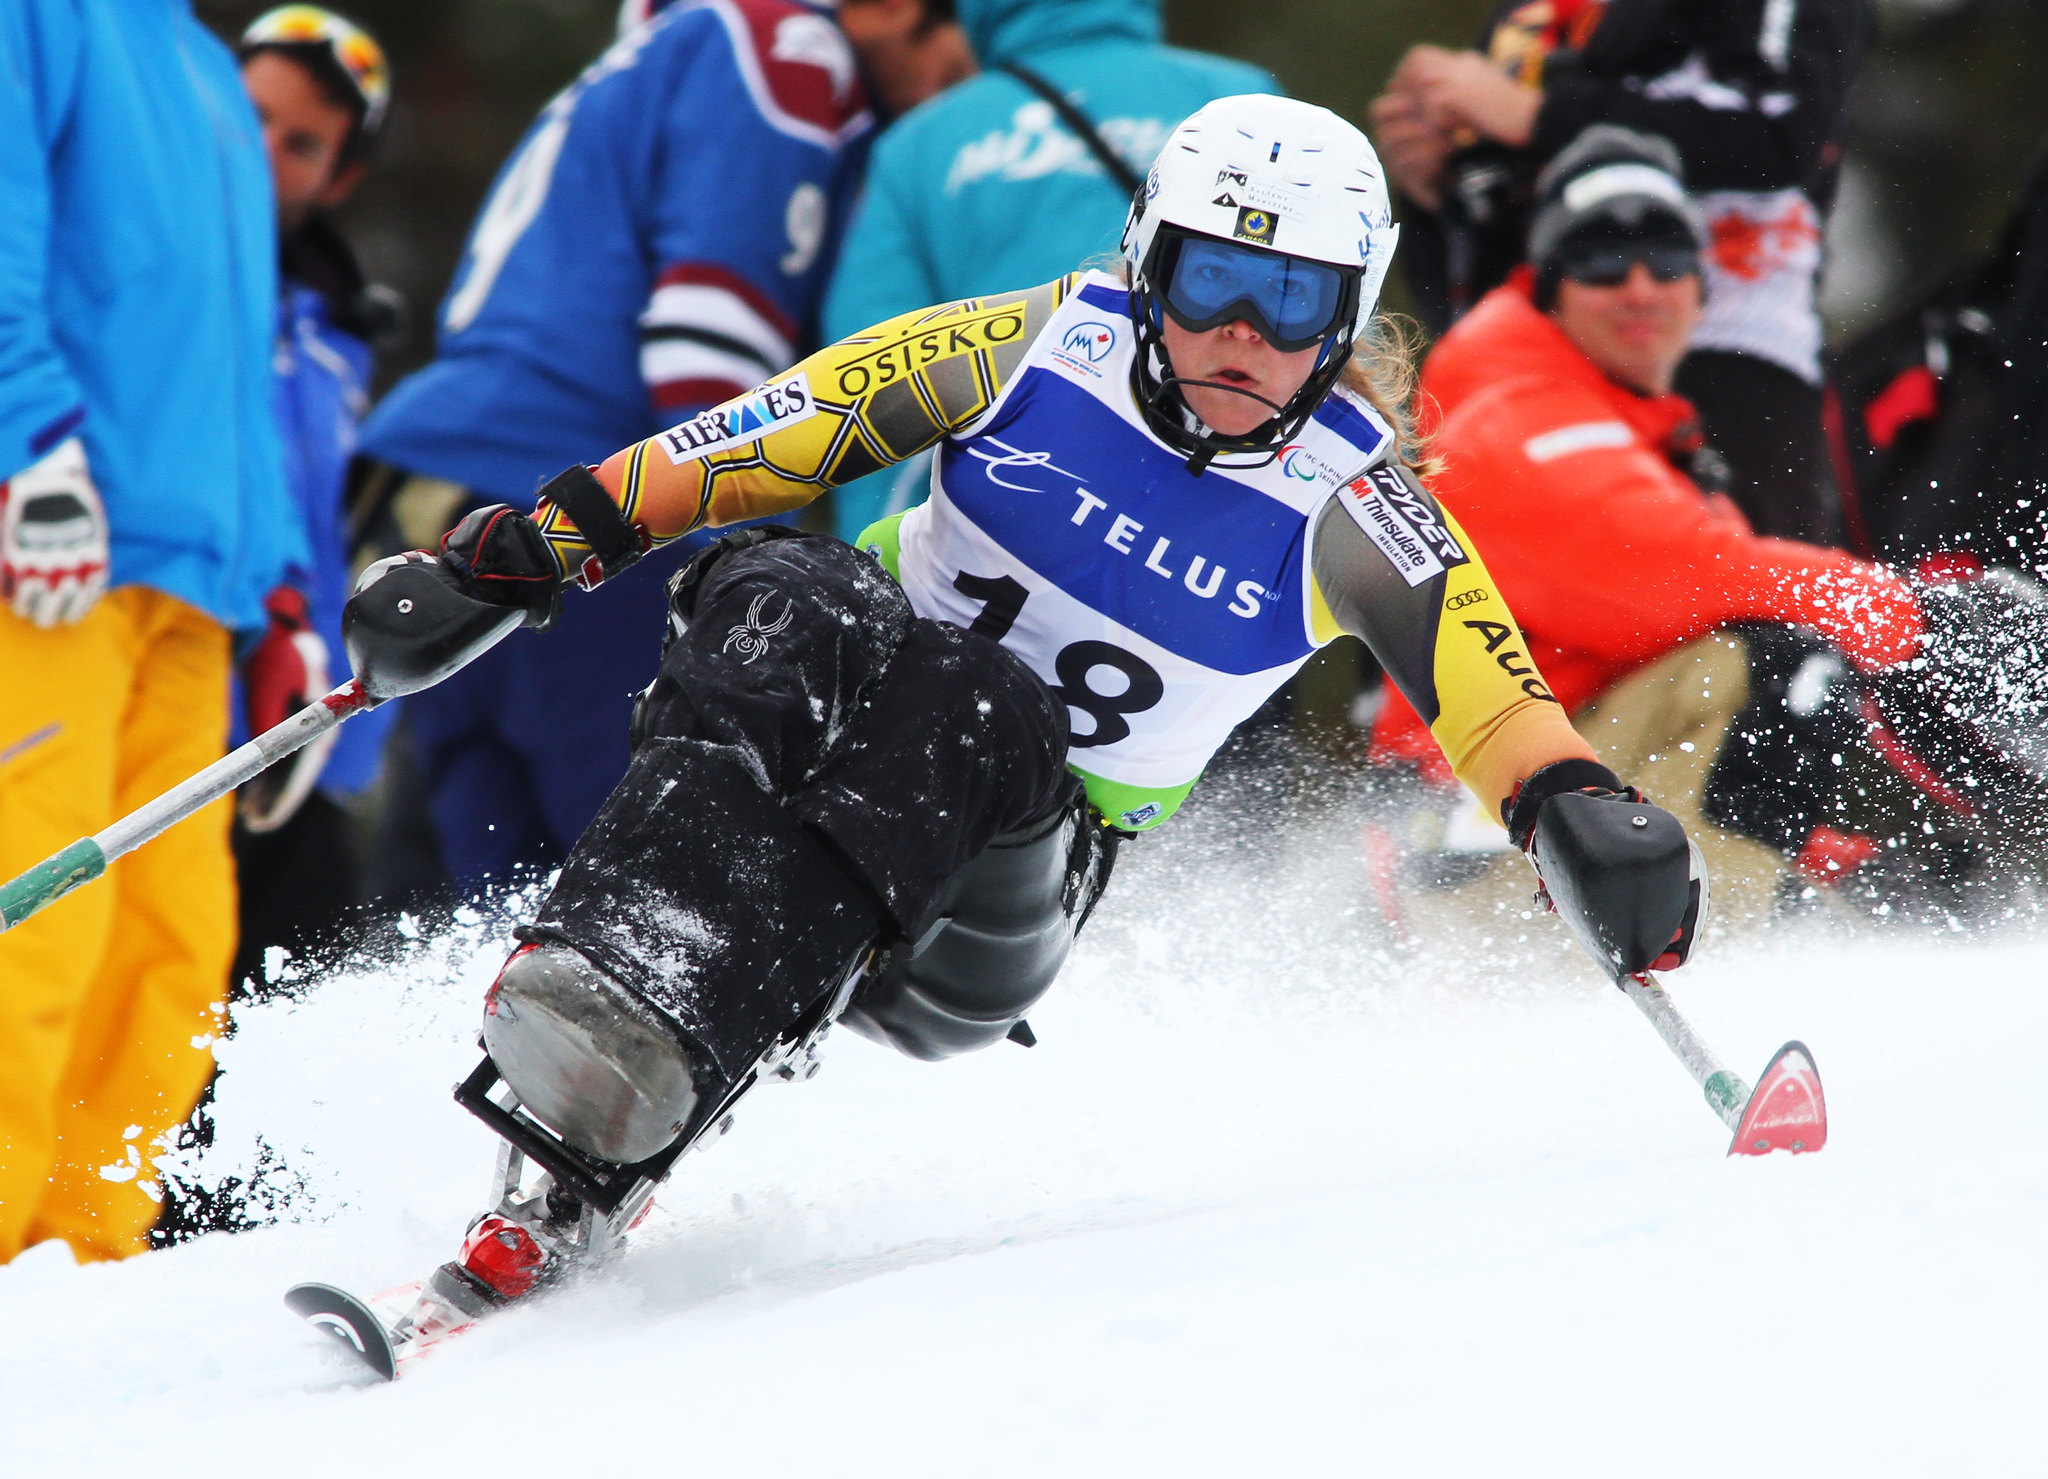 Kimberly Joines in an IPC World Cup slalom in Panorama, B.C.